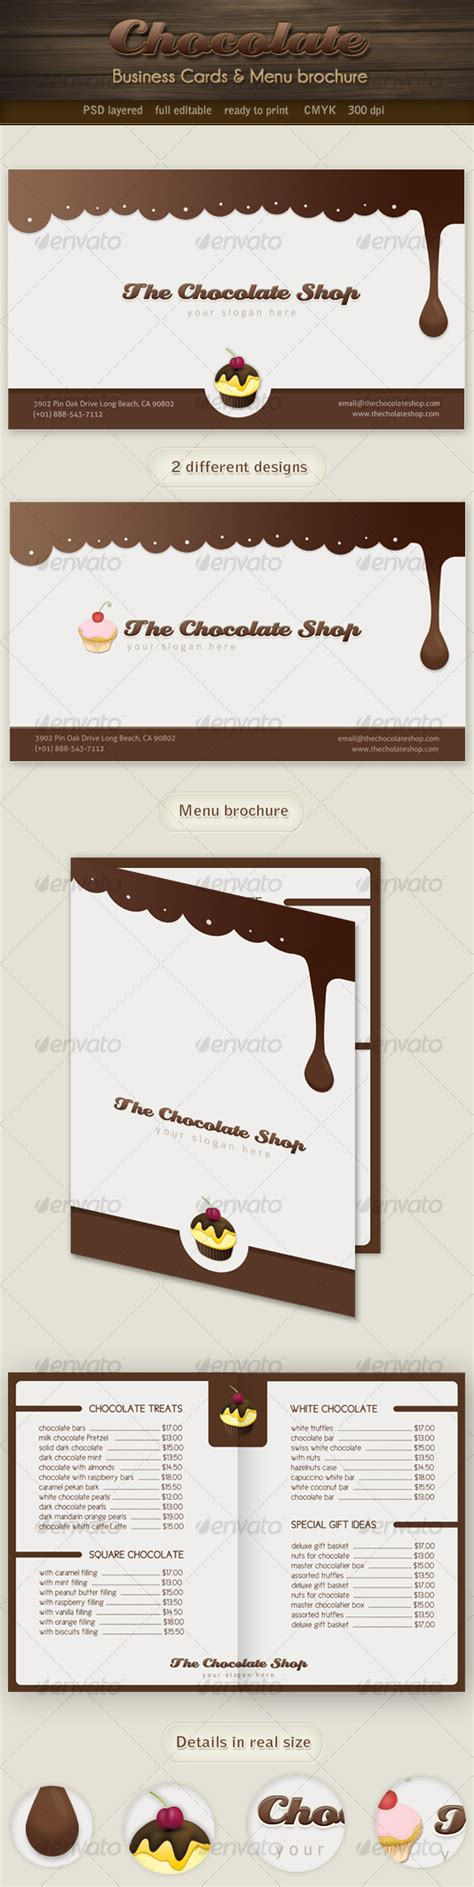 chocolate business cards templates chocolate business cards and menu brochure graphicriver